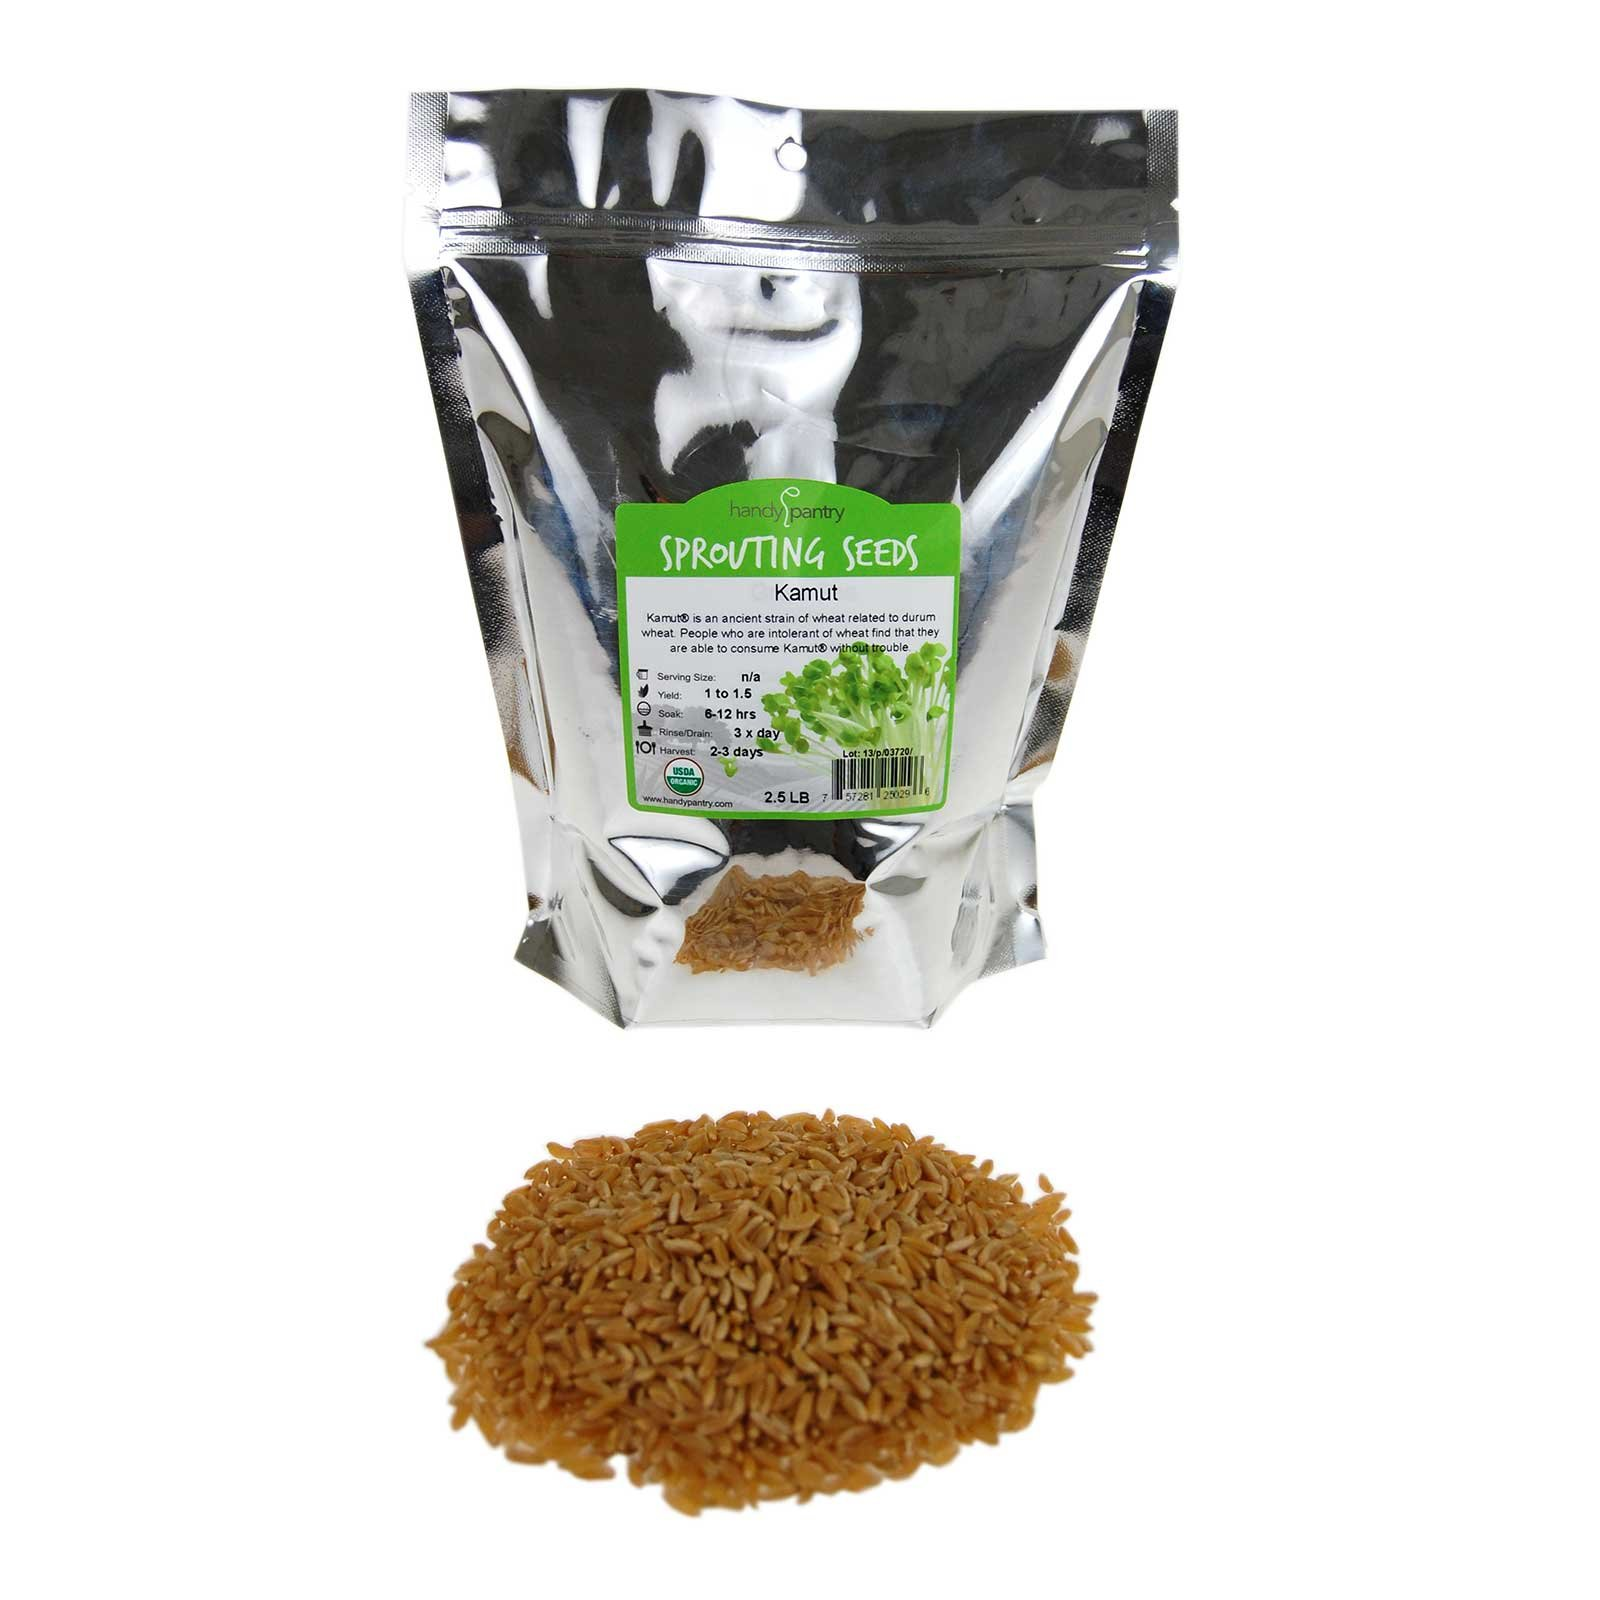 Organic Kamut Seed- 2.5 Lb- Kamut Grain Seeds- For Growing Kamut Grass, Flour, Bread, Baking, Cooking, Food Storage, Sprouting by Handy Pantry (Image #1)